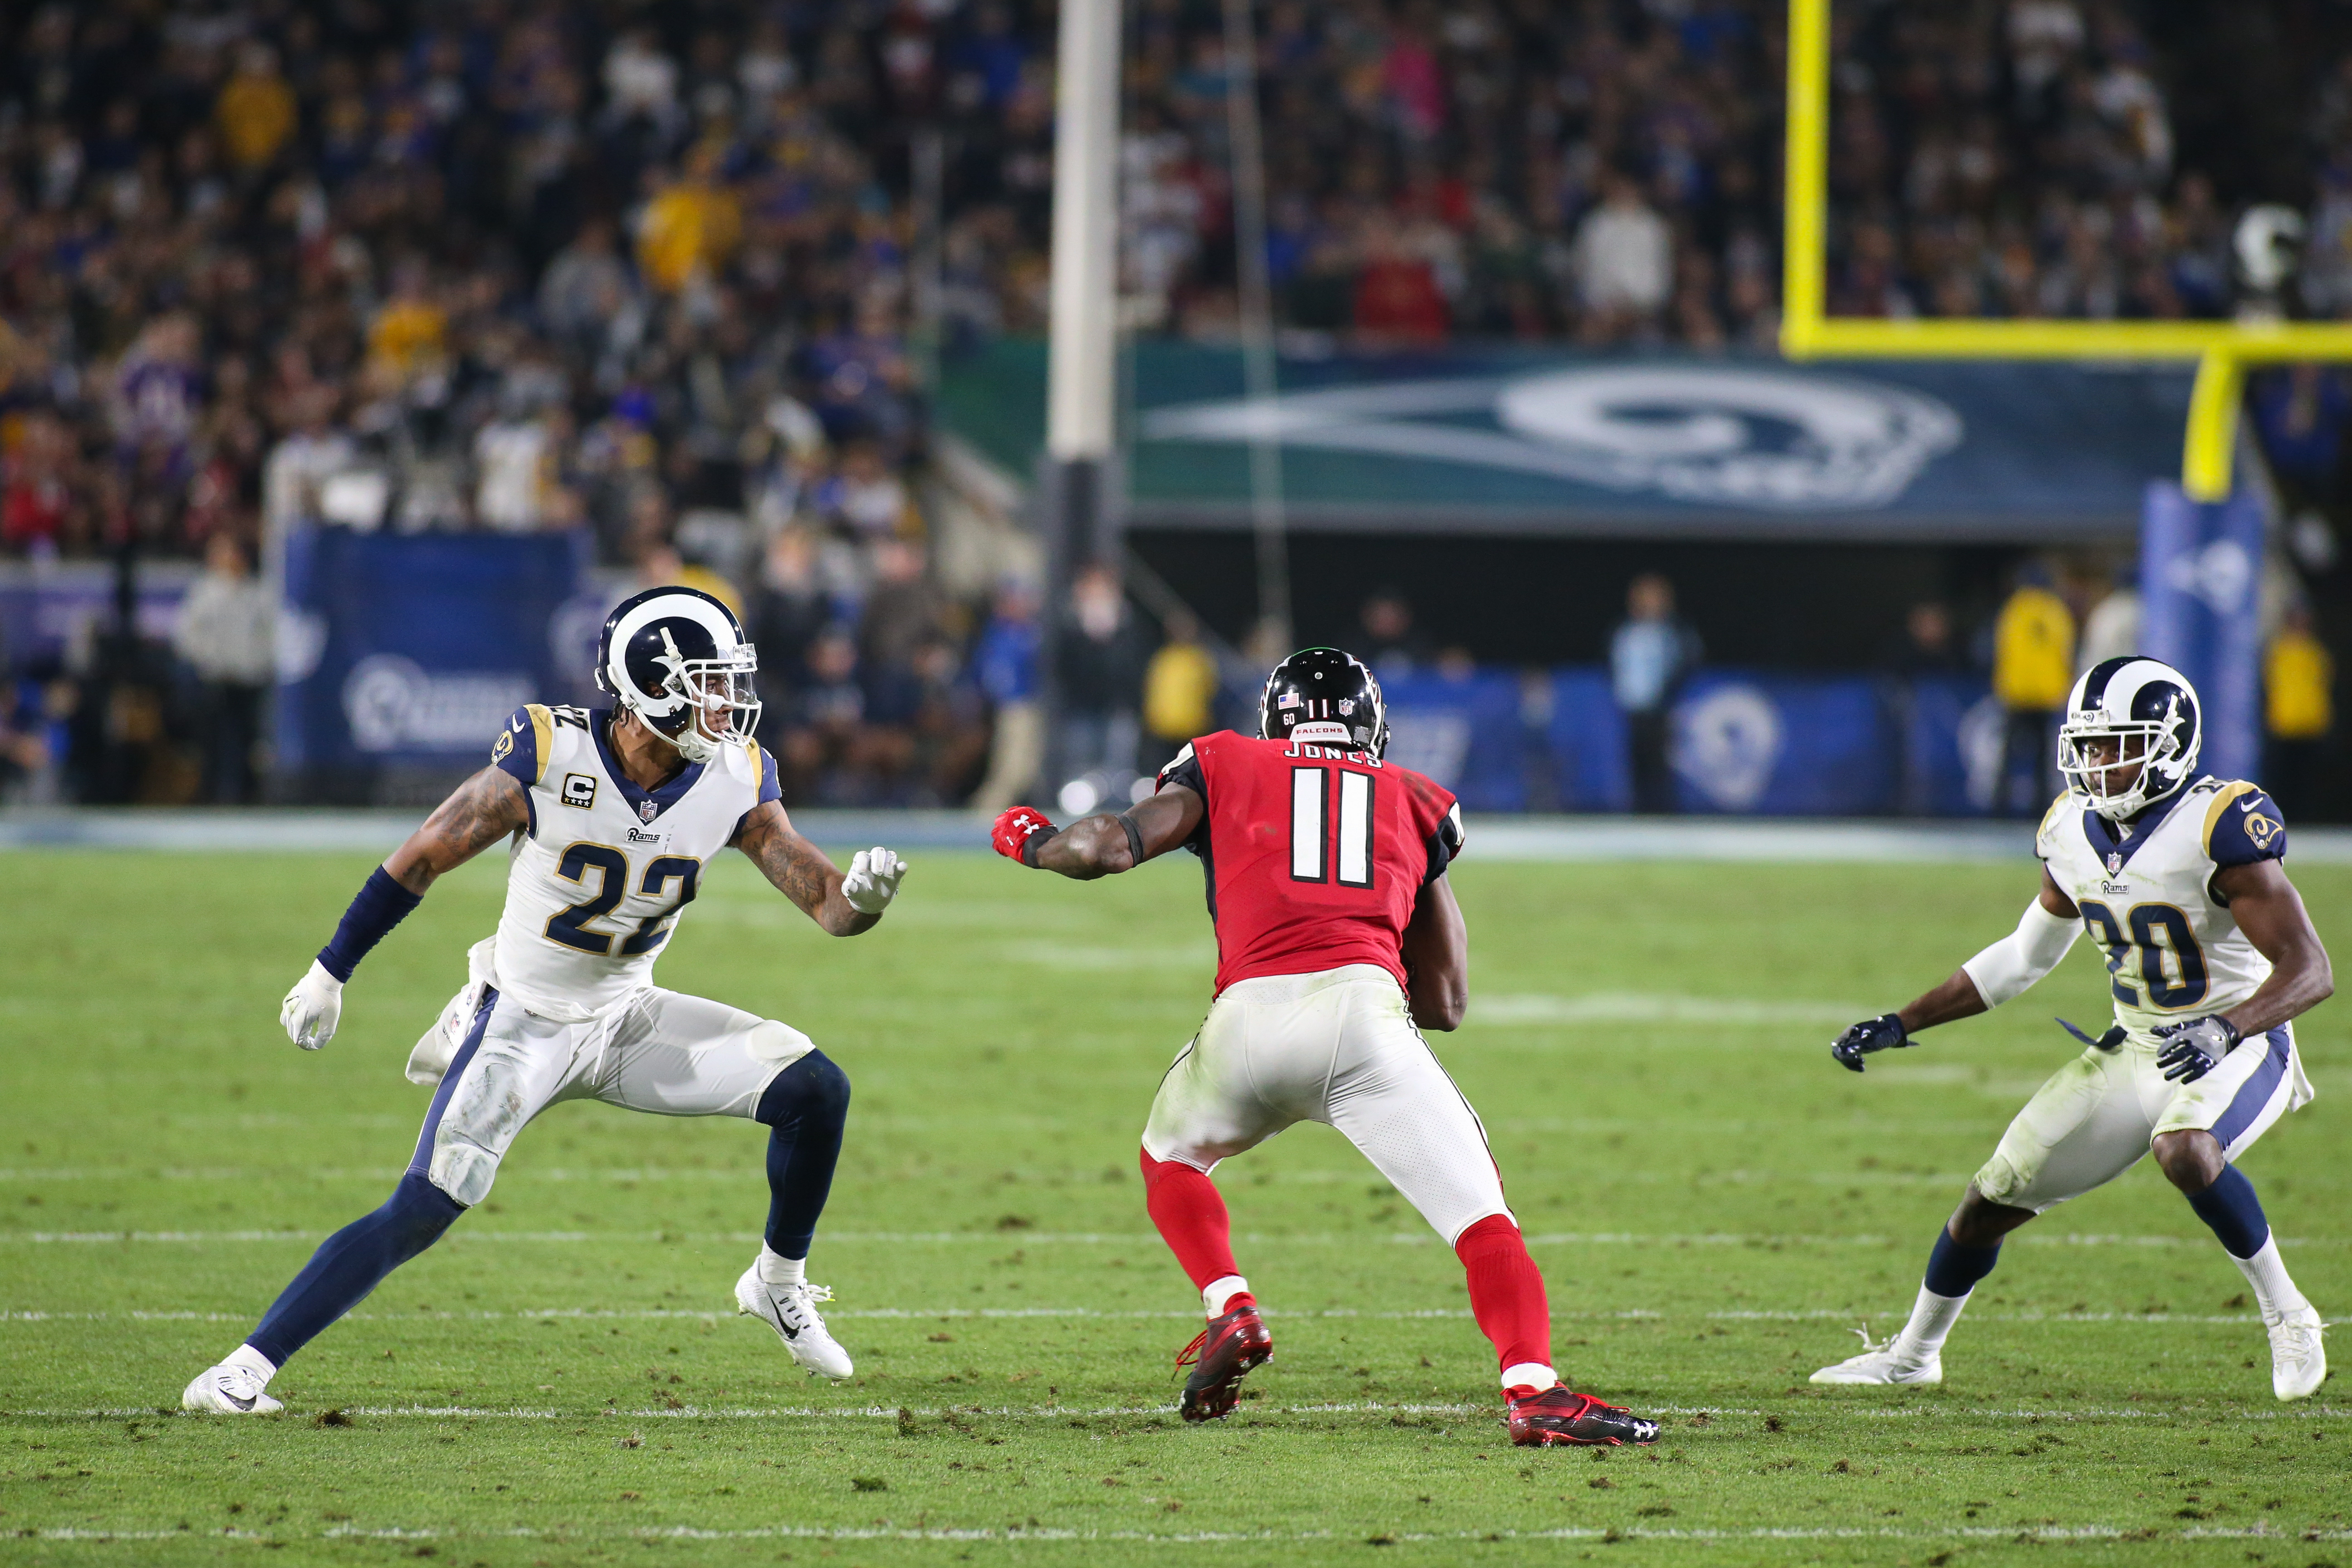 NFL: JAN 06 NFC Wild Card - Falcons at Rams